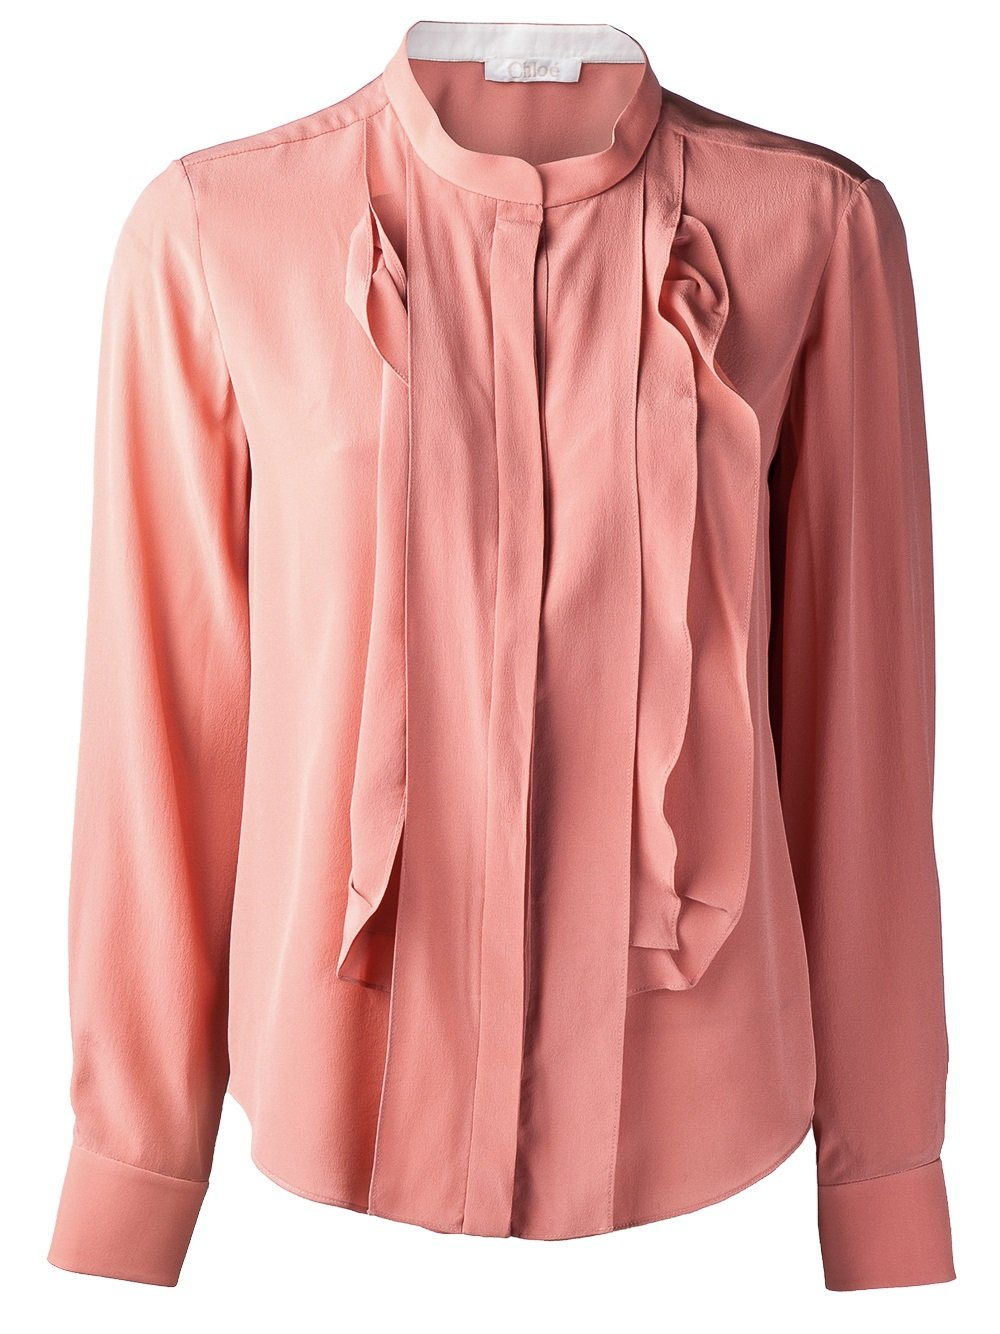 Stand Collar Blouse Designs Images : Chloé stand up collar blouse in pink purple lyst